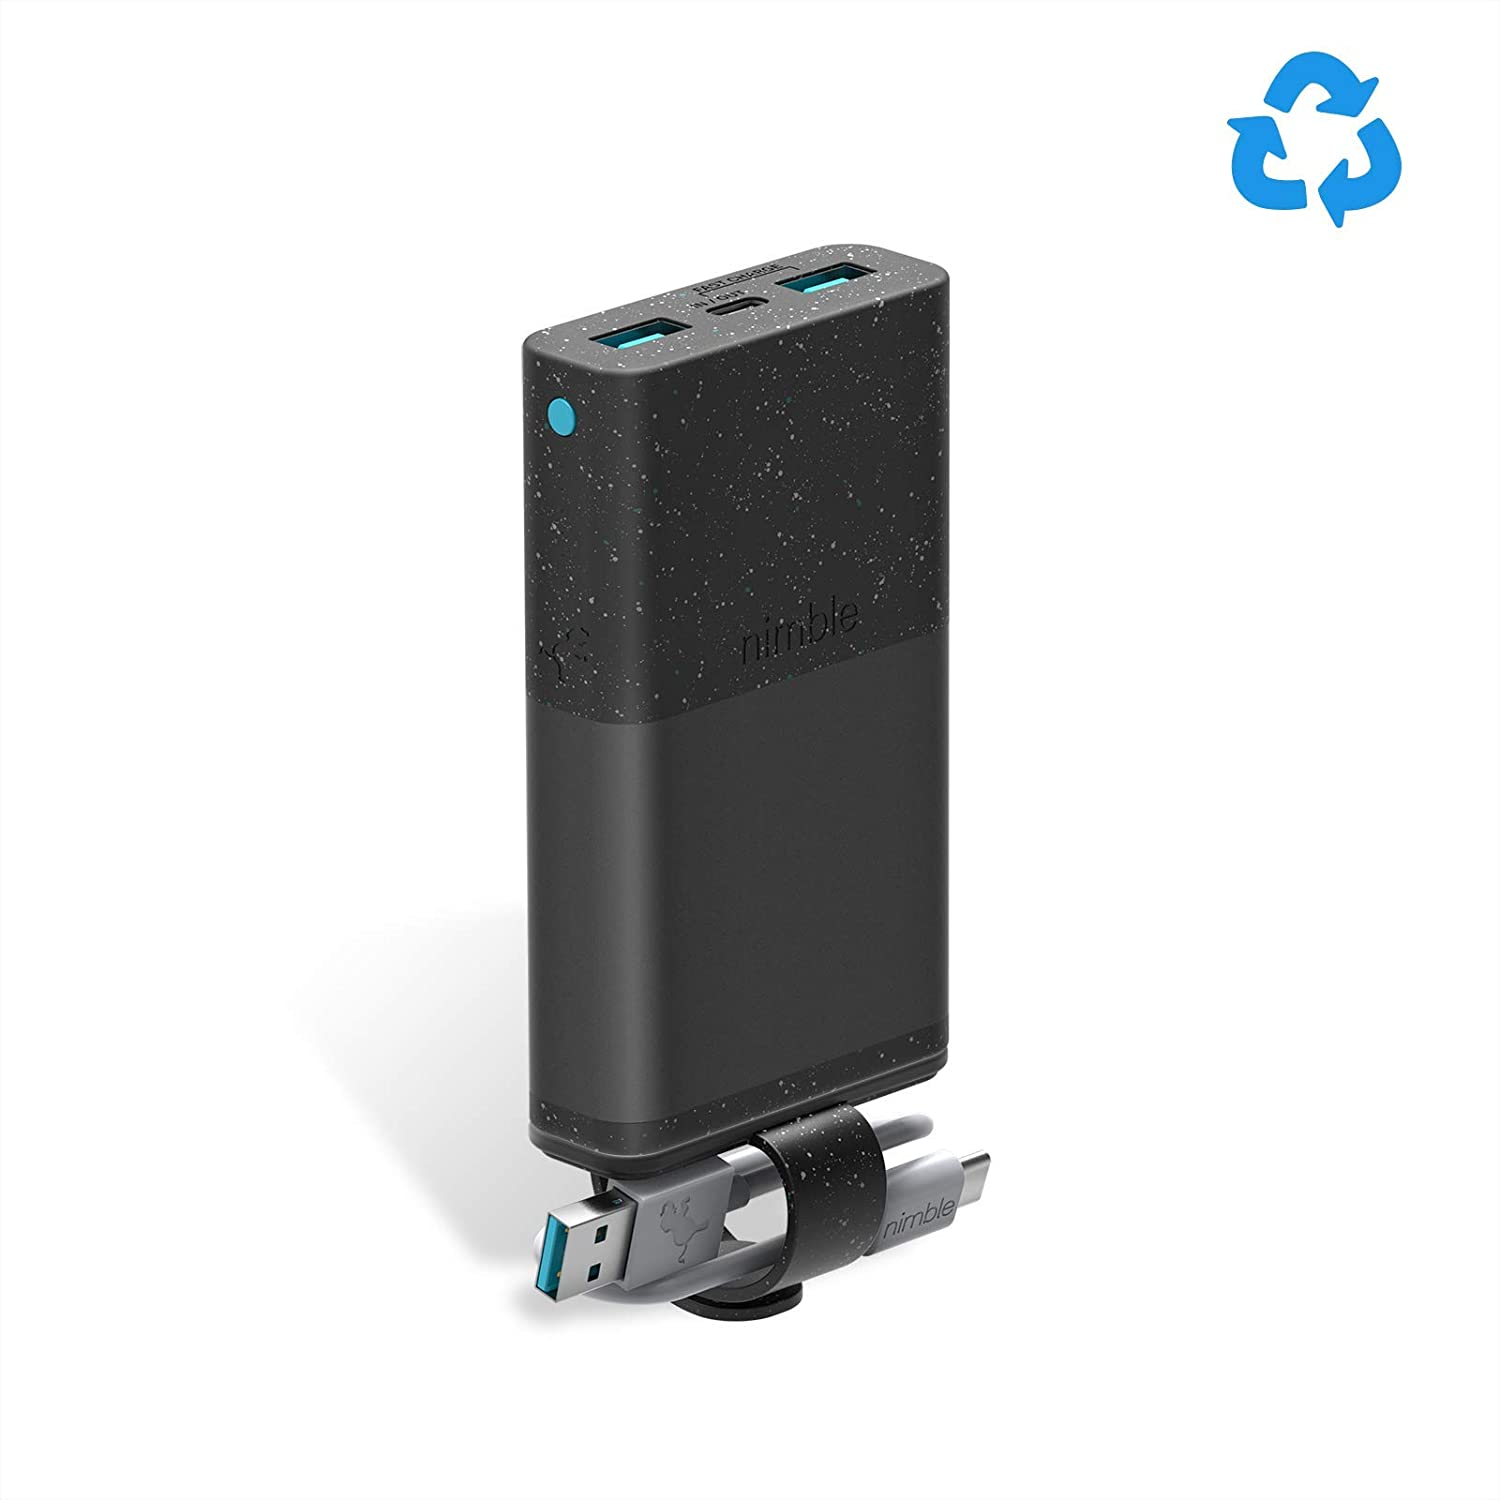 acc1a3f1d8fb90 Amazon.com: Nimble Eco-Friendly 3-Day Portable Charger, 10000 mAh QC 3.0 &  18W Power Delivery Fast Charging USB-C Compatible with Apple, Samsung, ...